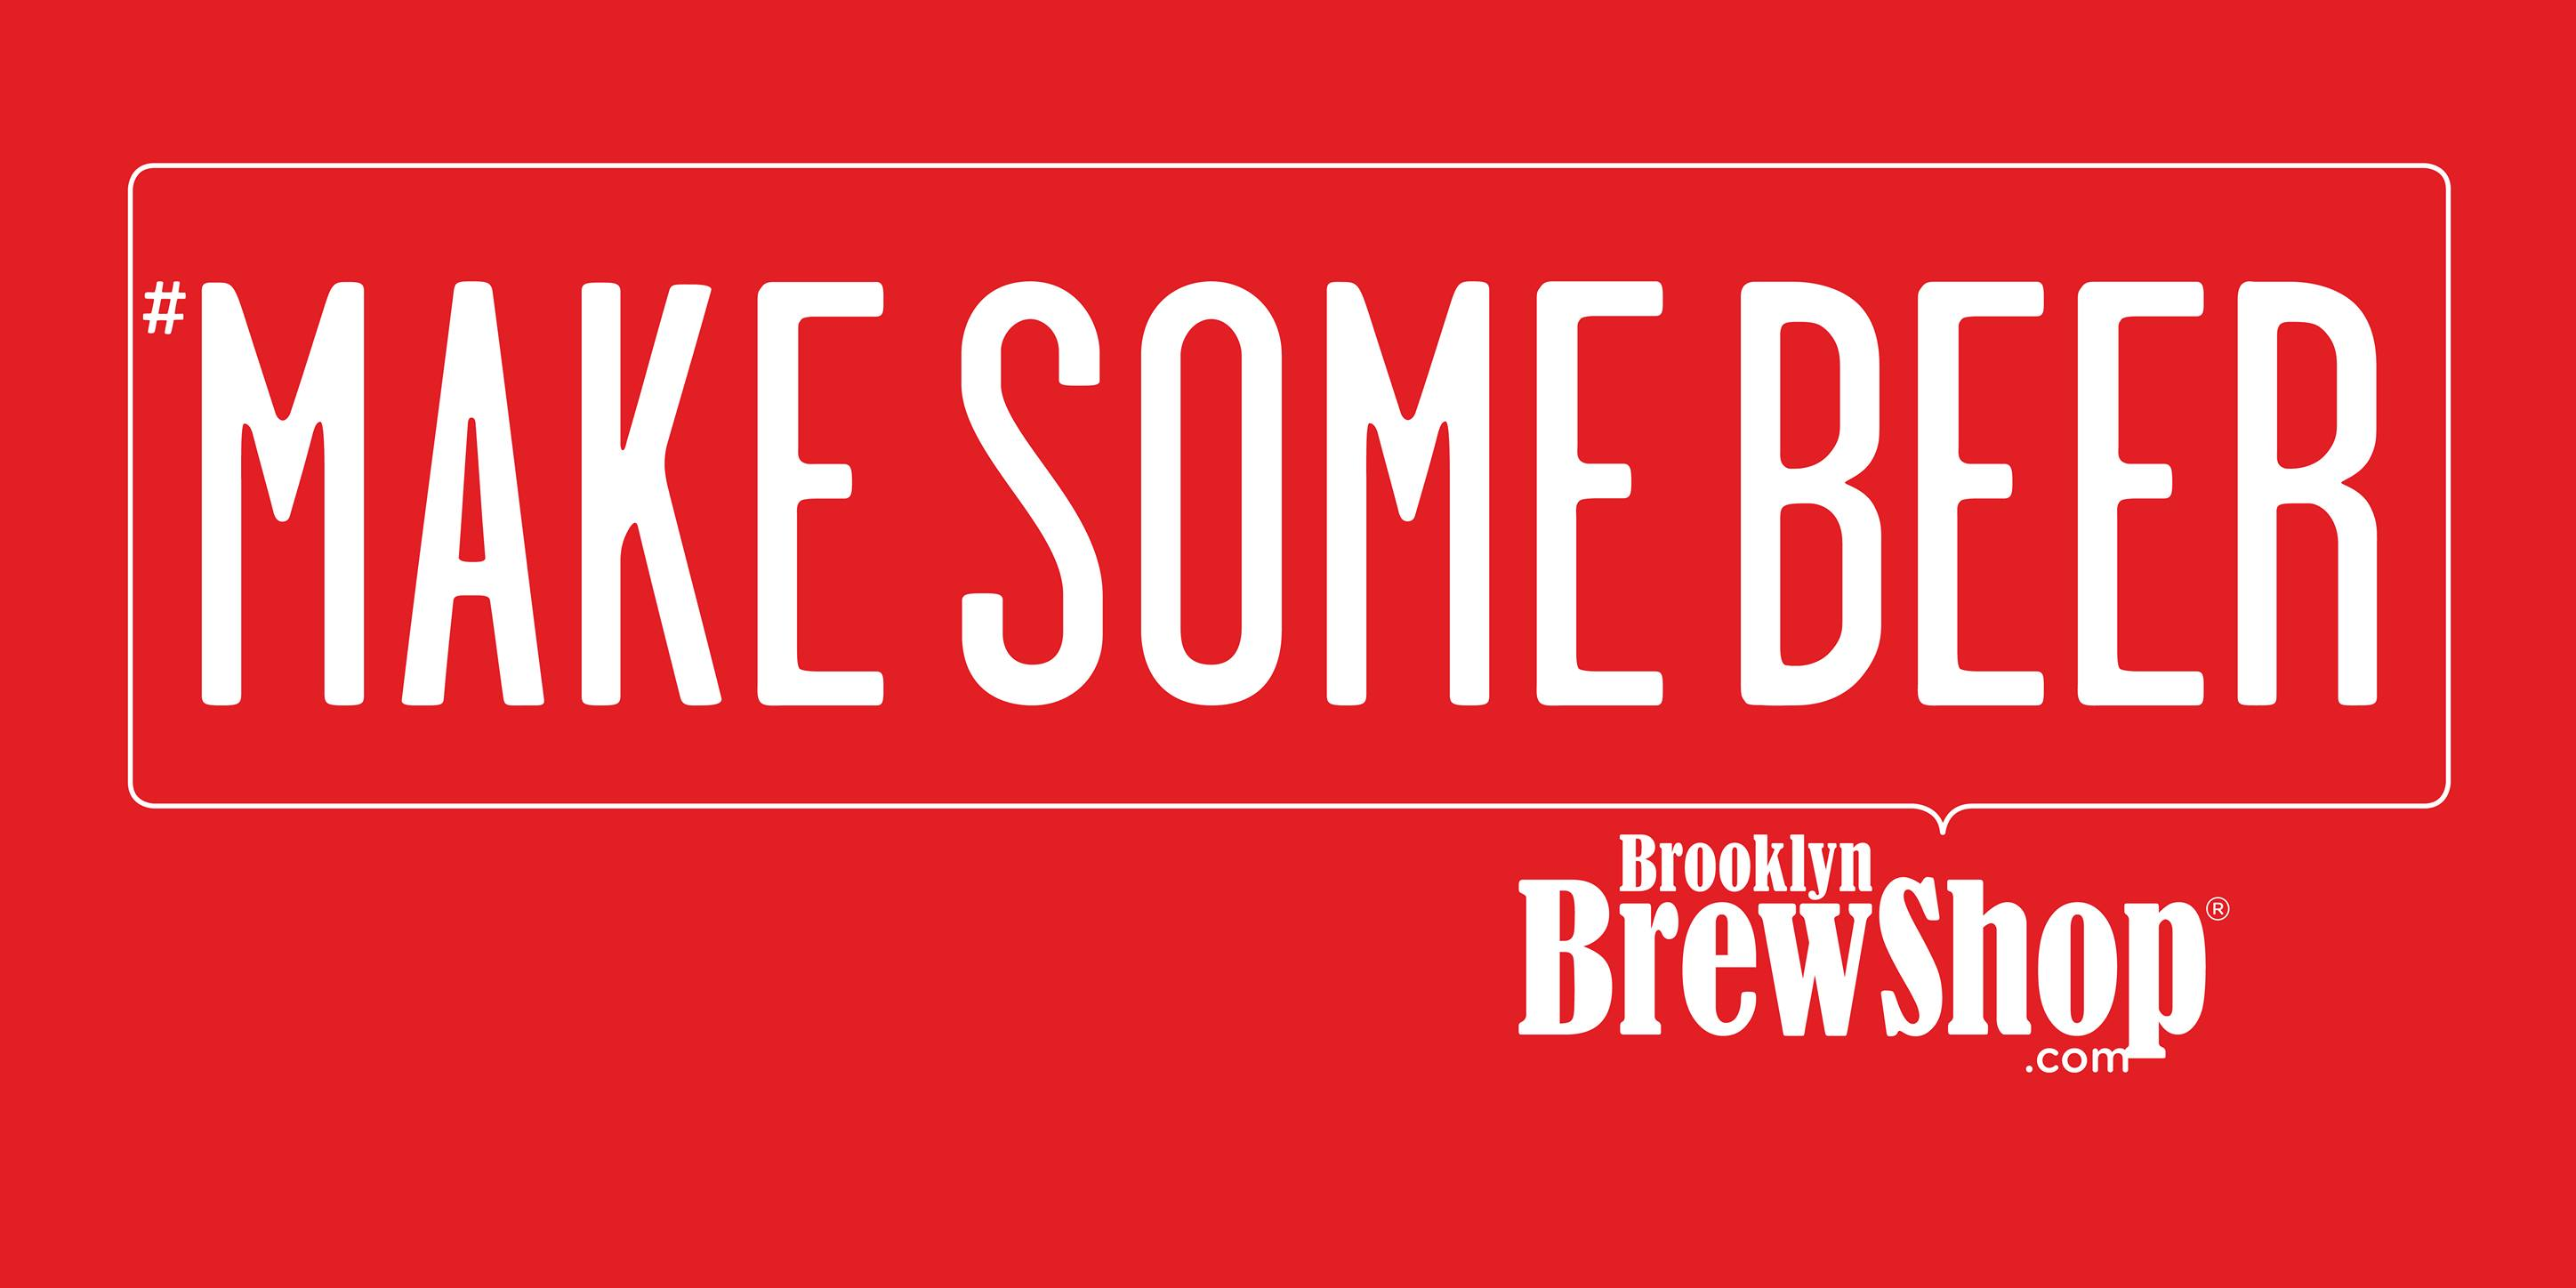 About Brooklyn Brew Shop Homepage